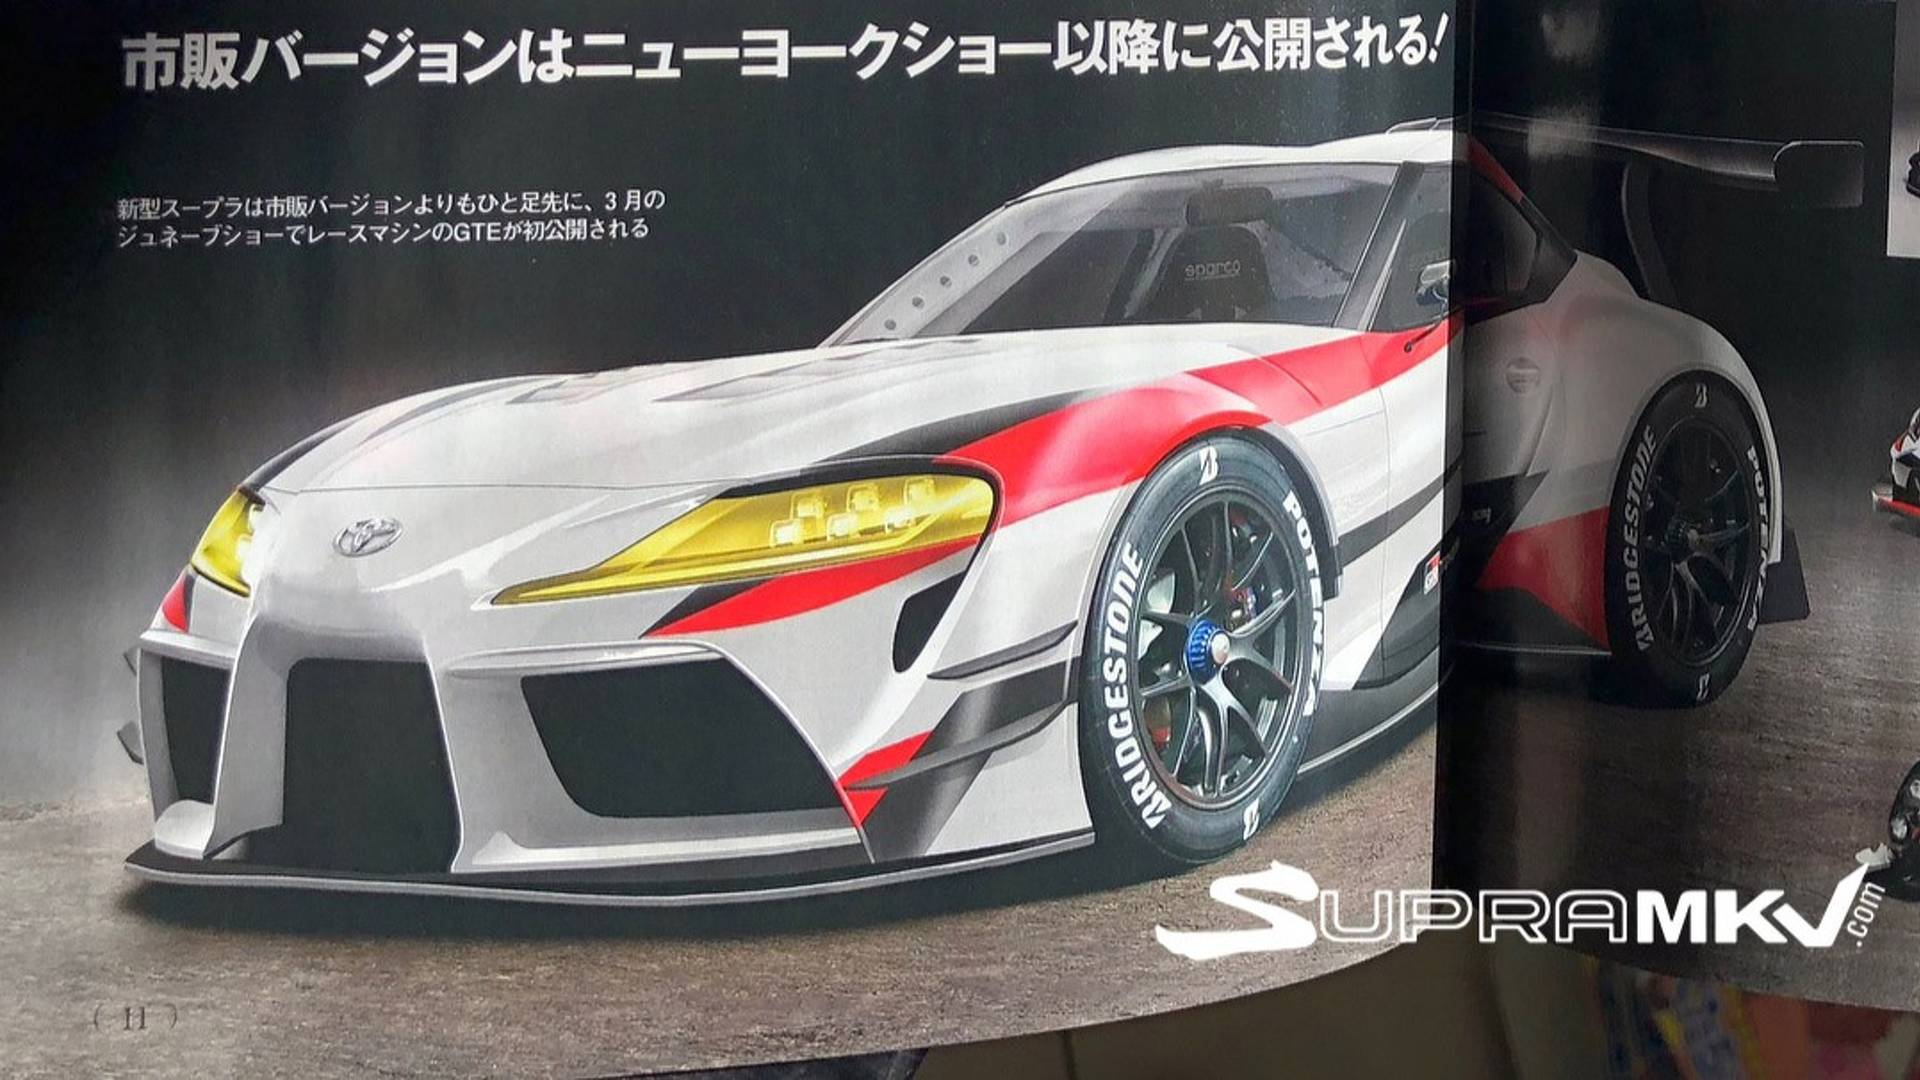 Toyota Supra leaks in Japanese magazine ahead of Geneva debut